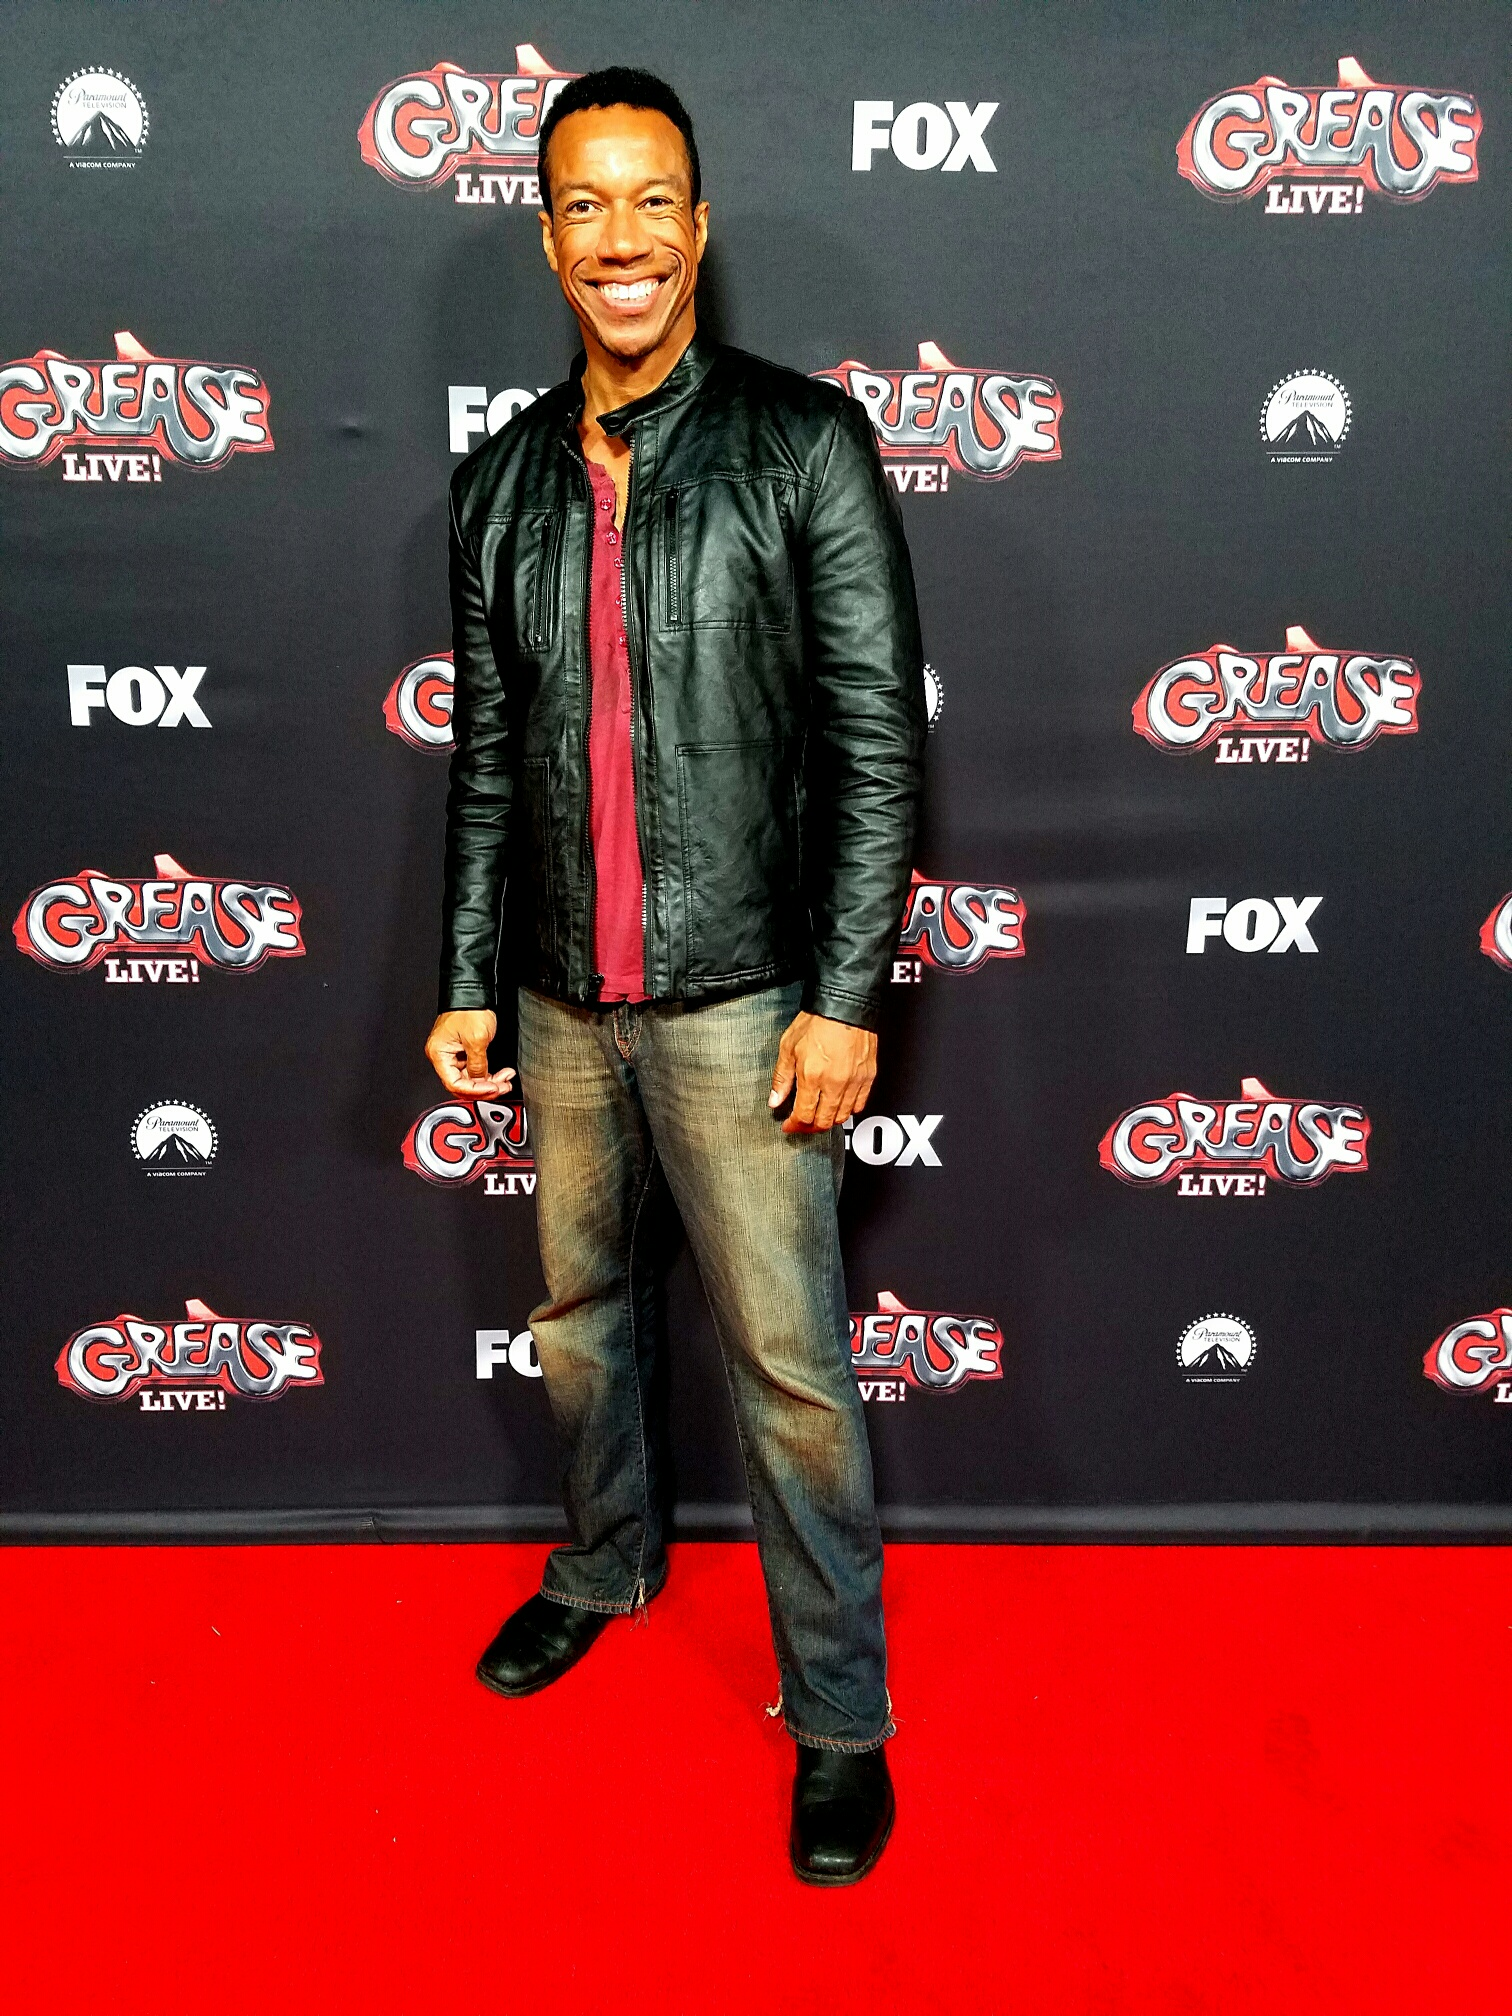 Grease Live Emmy screening